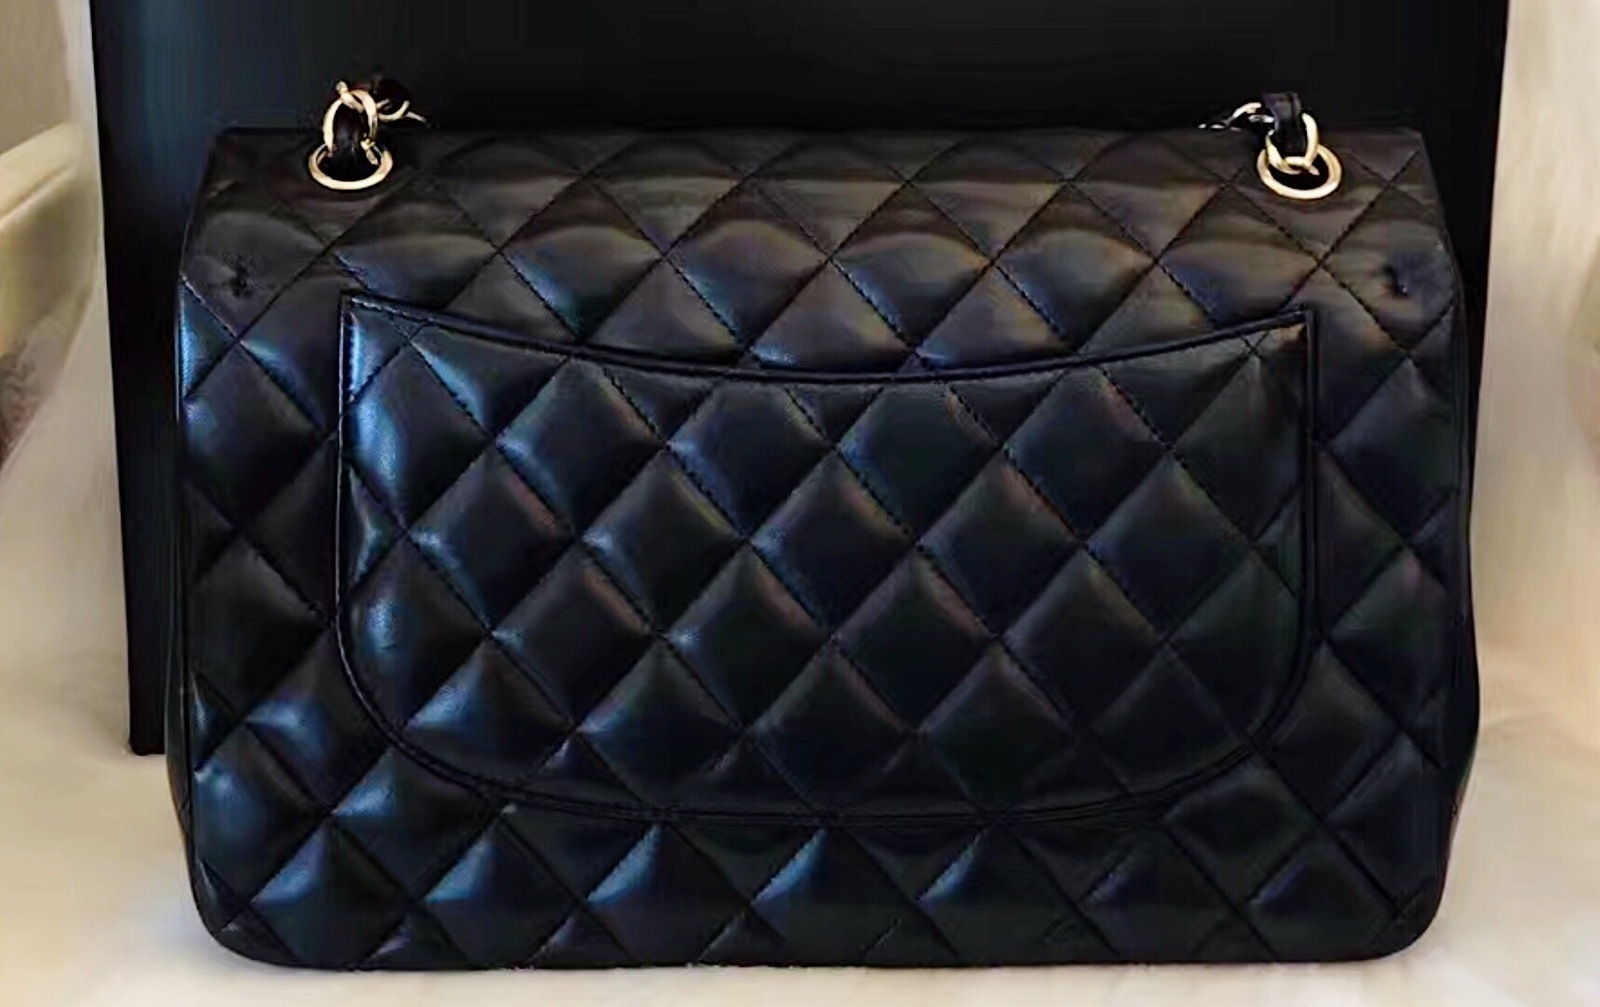 100% Authentic Chanel 2015 Black Quilted Lambskin Jumbo Classic DOUBLE Flap Bag